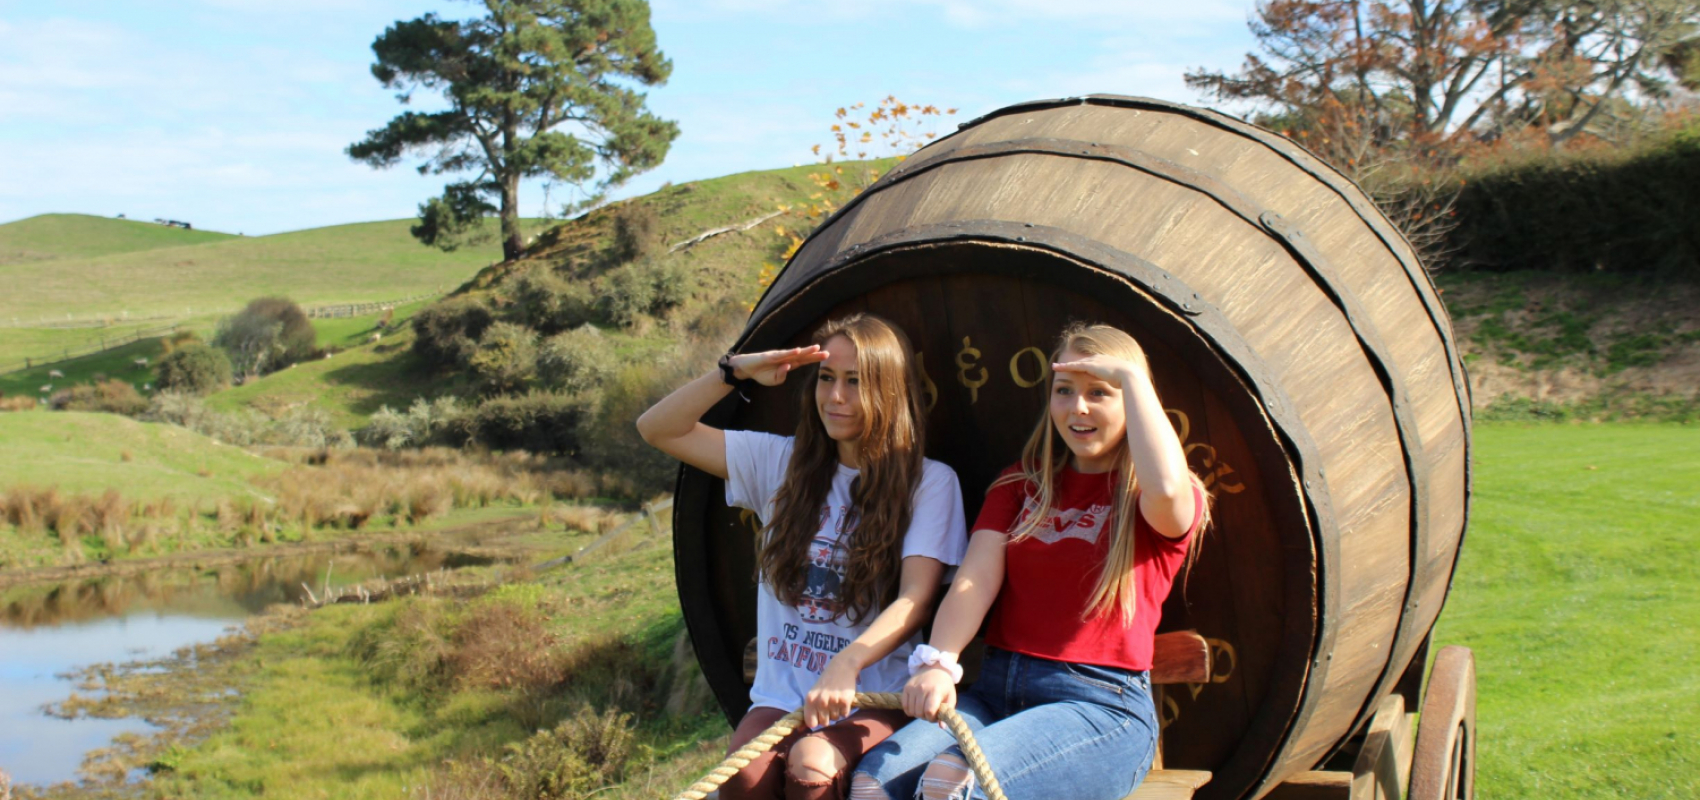 Two students riding on cart at Hobbiton